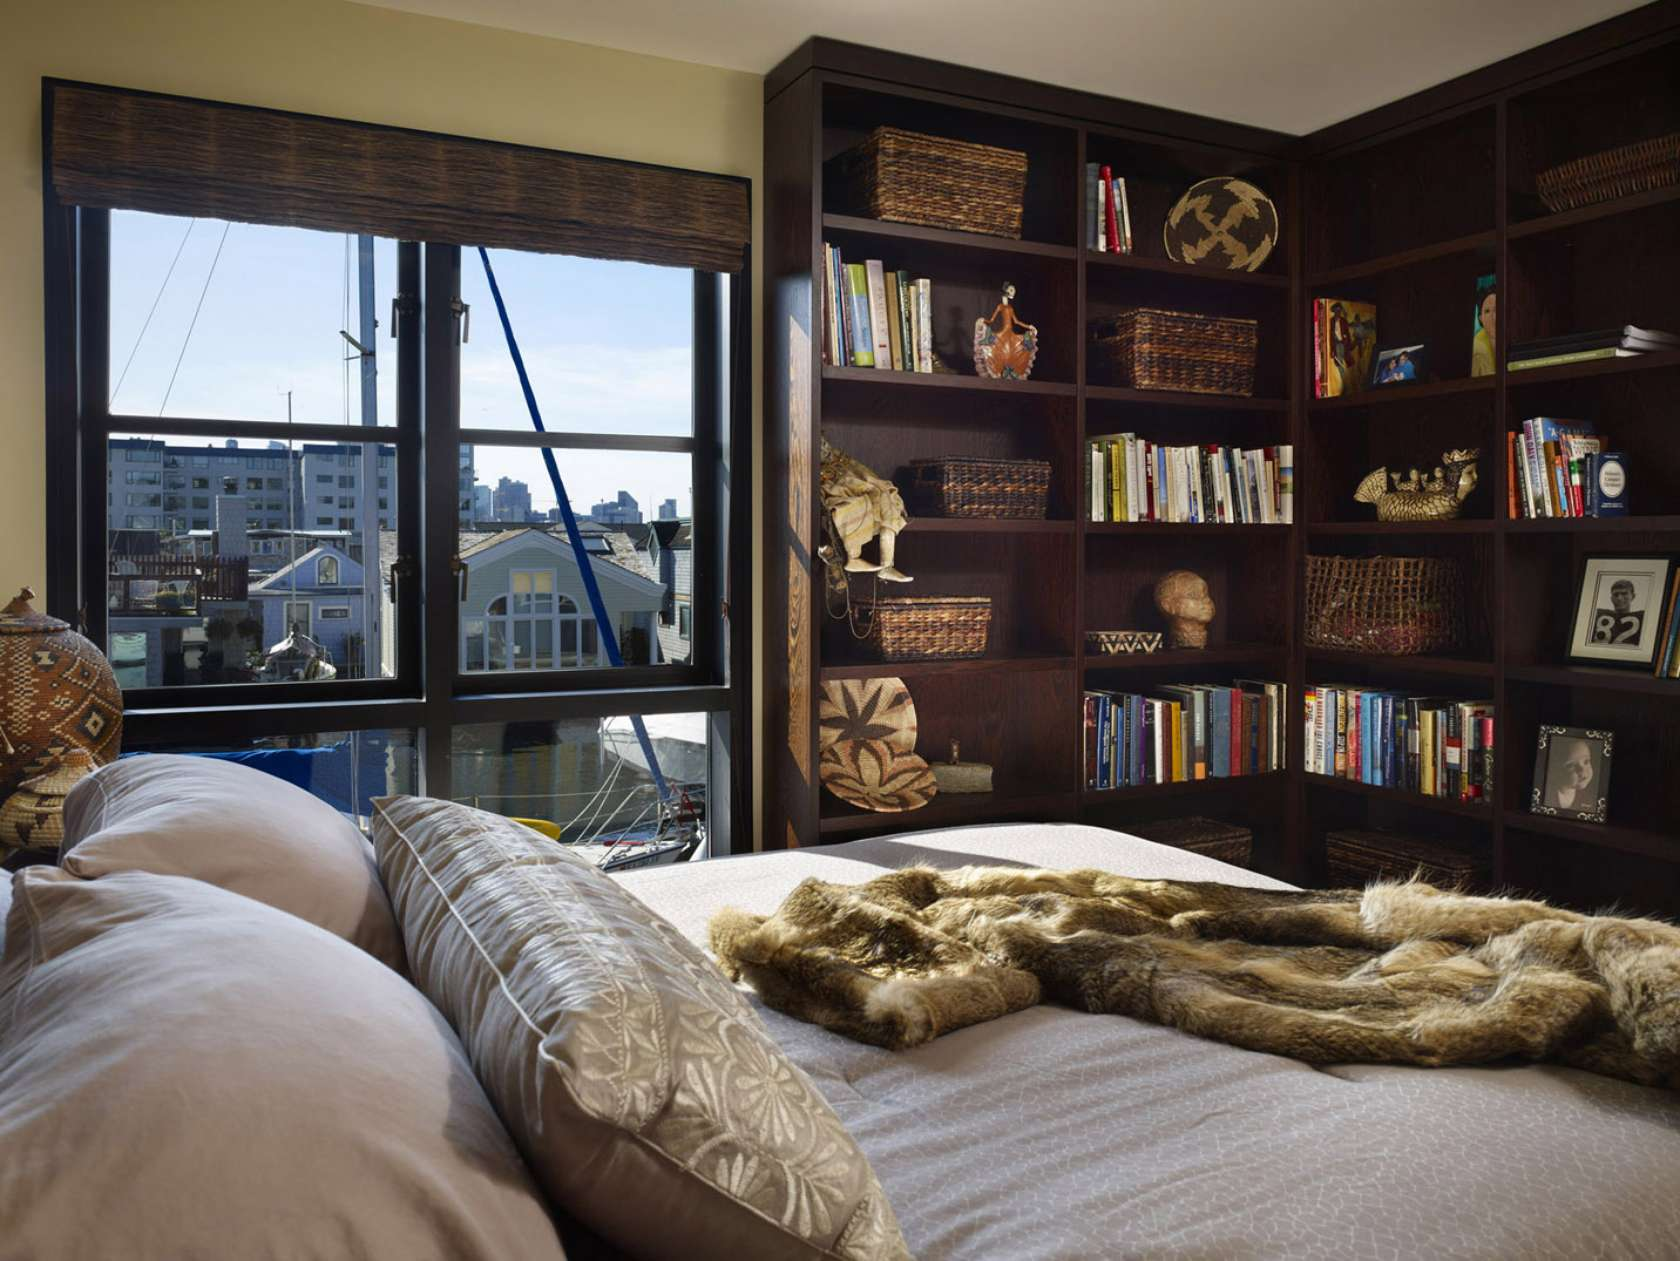 Bookshelf Ideas For Bedroom Clever Ways In Which A Corner Bookshelf Can Fill In The